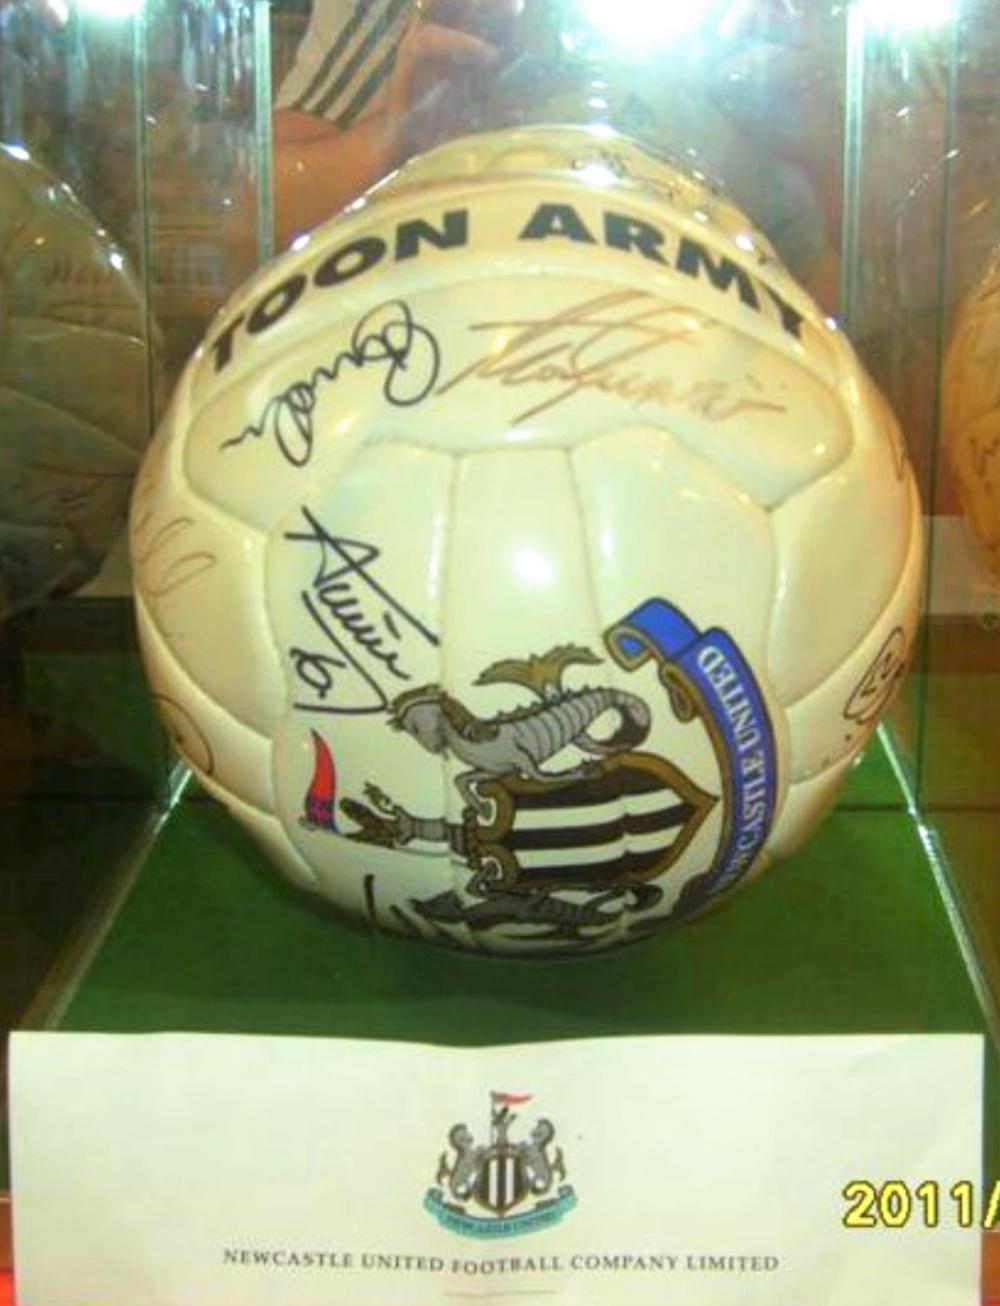 Lot 216: Signed Newcastle Football -  Direct frm the Club Plus Complement slip